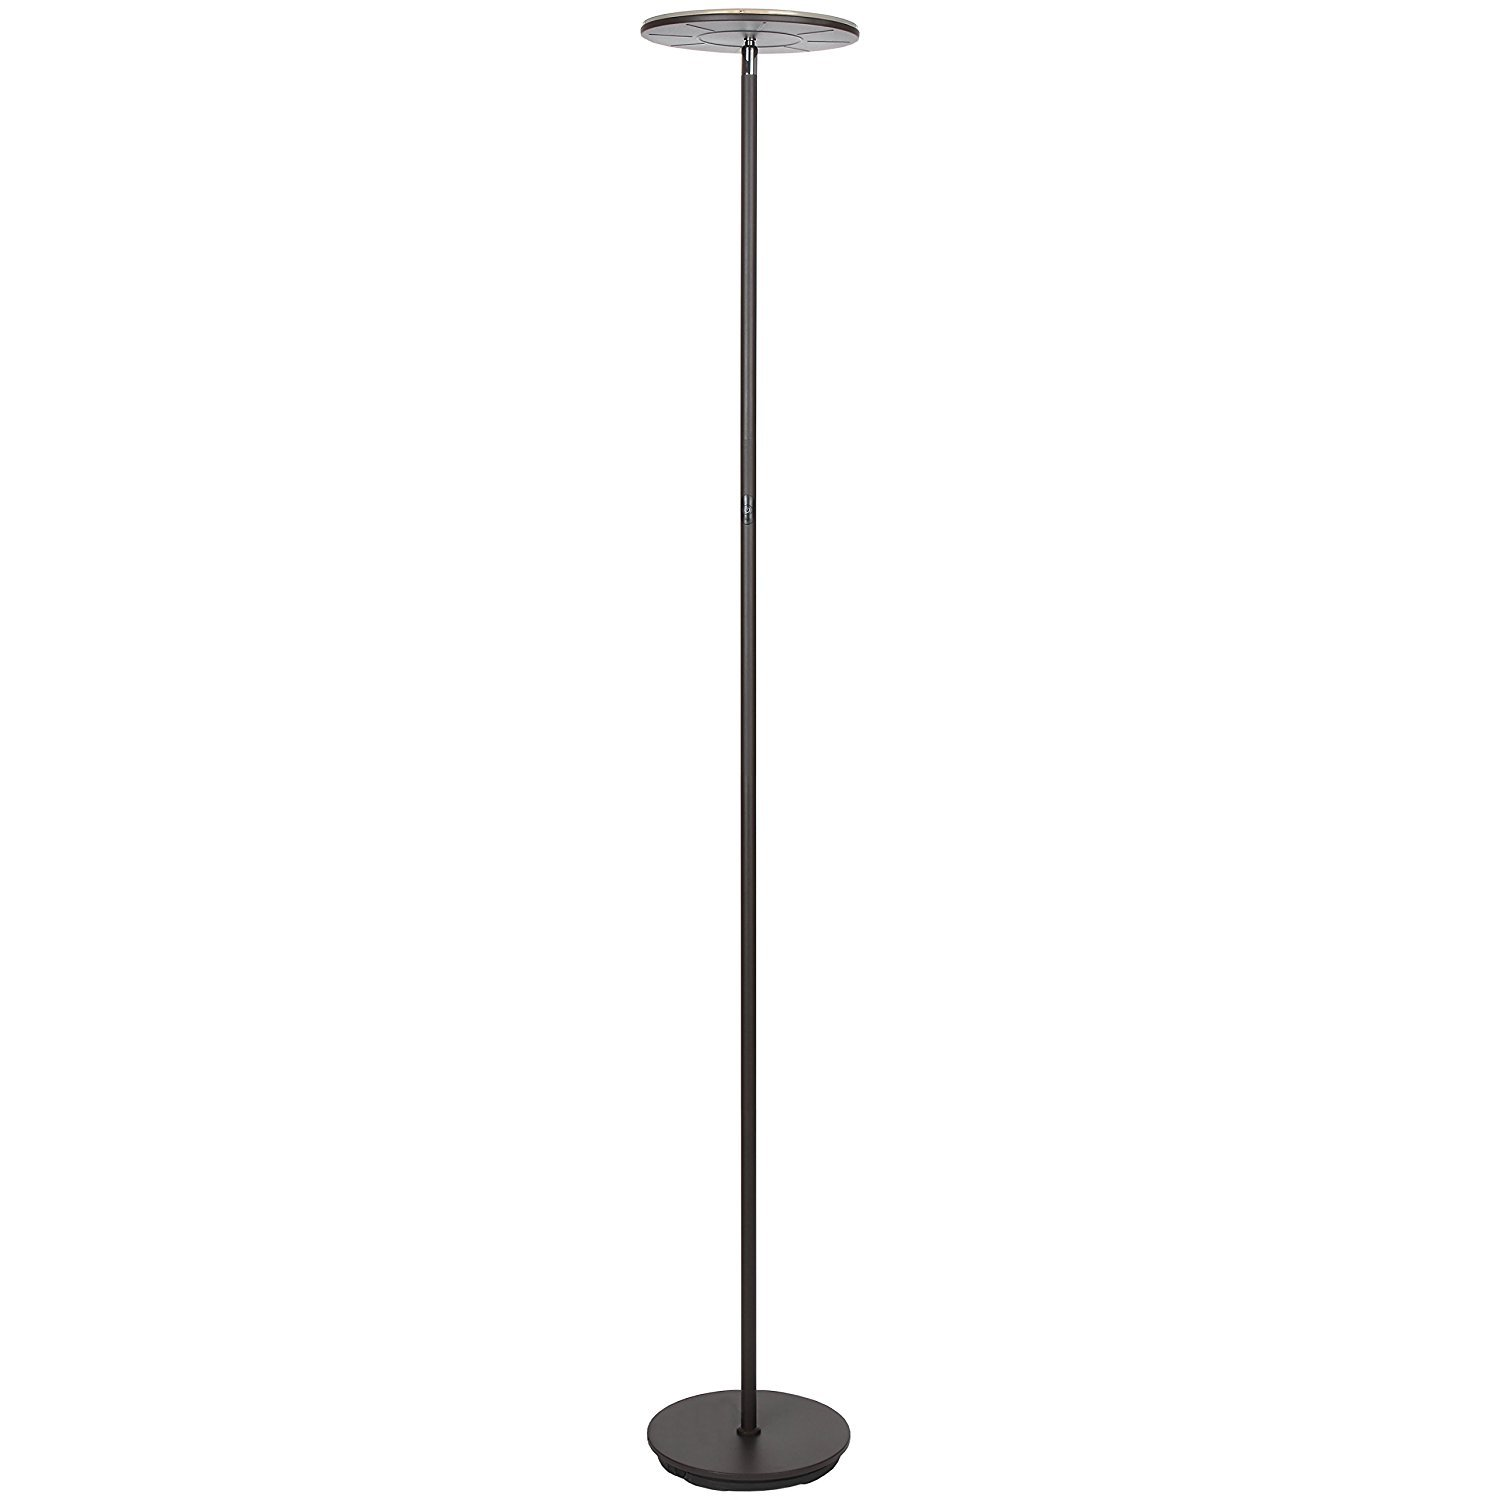 Brightech Sky Flux - Modern LED Torchiere Floor Lamp for Living Rooms & Bedrooms - Adjustable Warm to Cool White - Tall Pole, Standing Office Light - Bright, Minimalist & Contemporary Uplight - Bronze